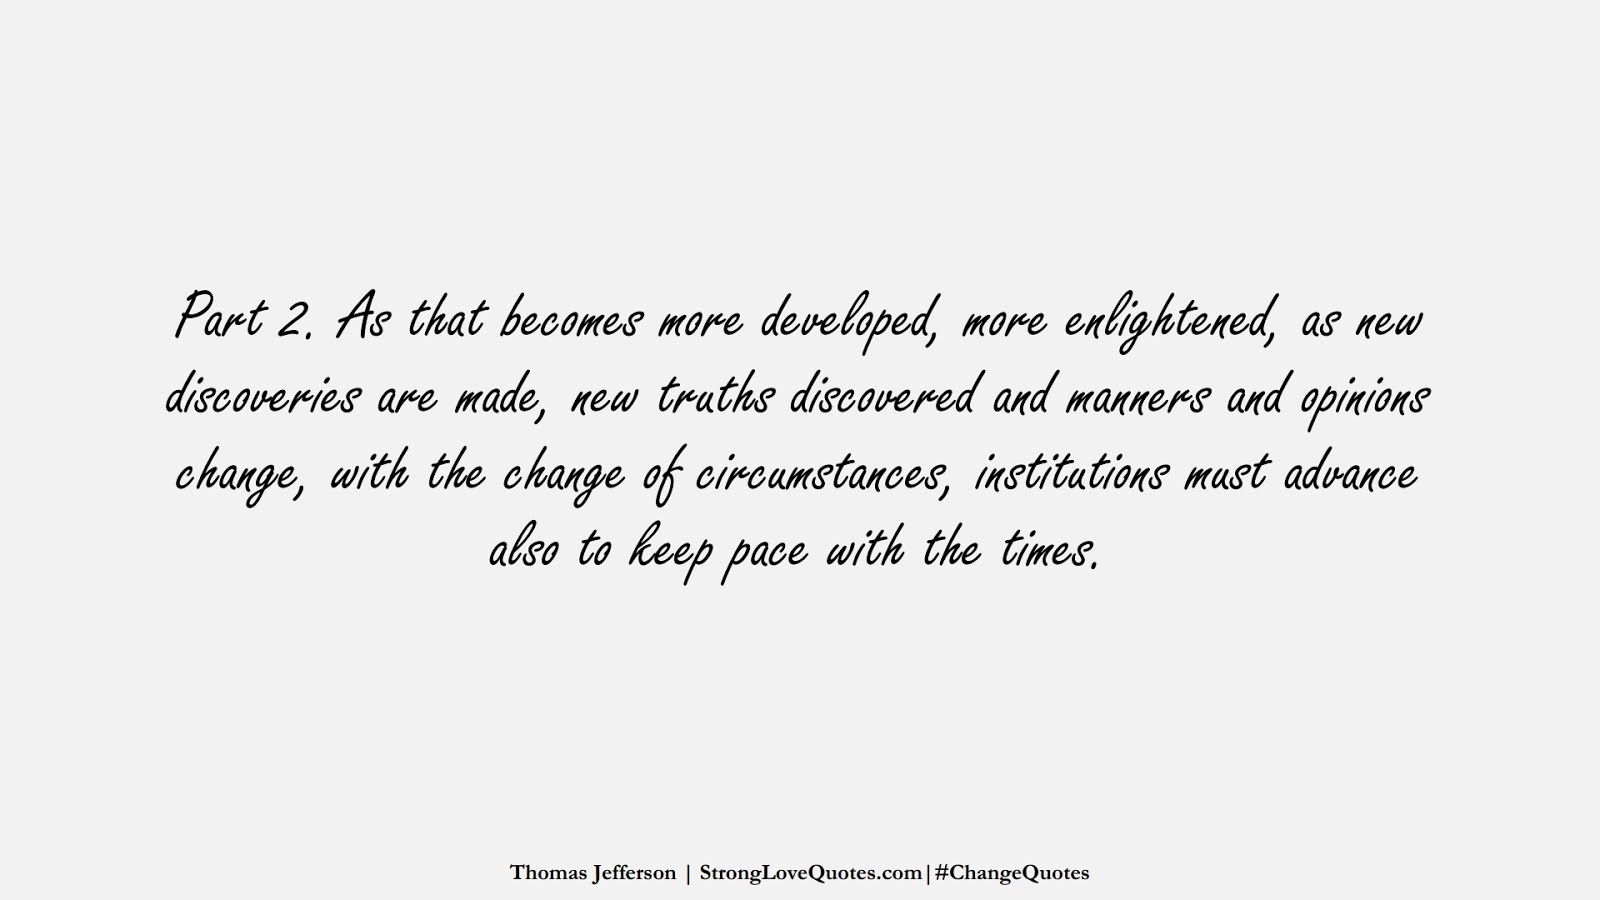 Part 2. As that becomes more developed, more enlightened, as new discoveries are made, new truths discovered and manners and opinions change, with the change of circumstances, institutions must advance also to keep pace with the times. (Thomas Jefferson);  #ChangeQuotes